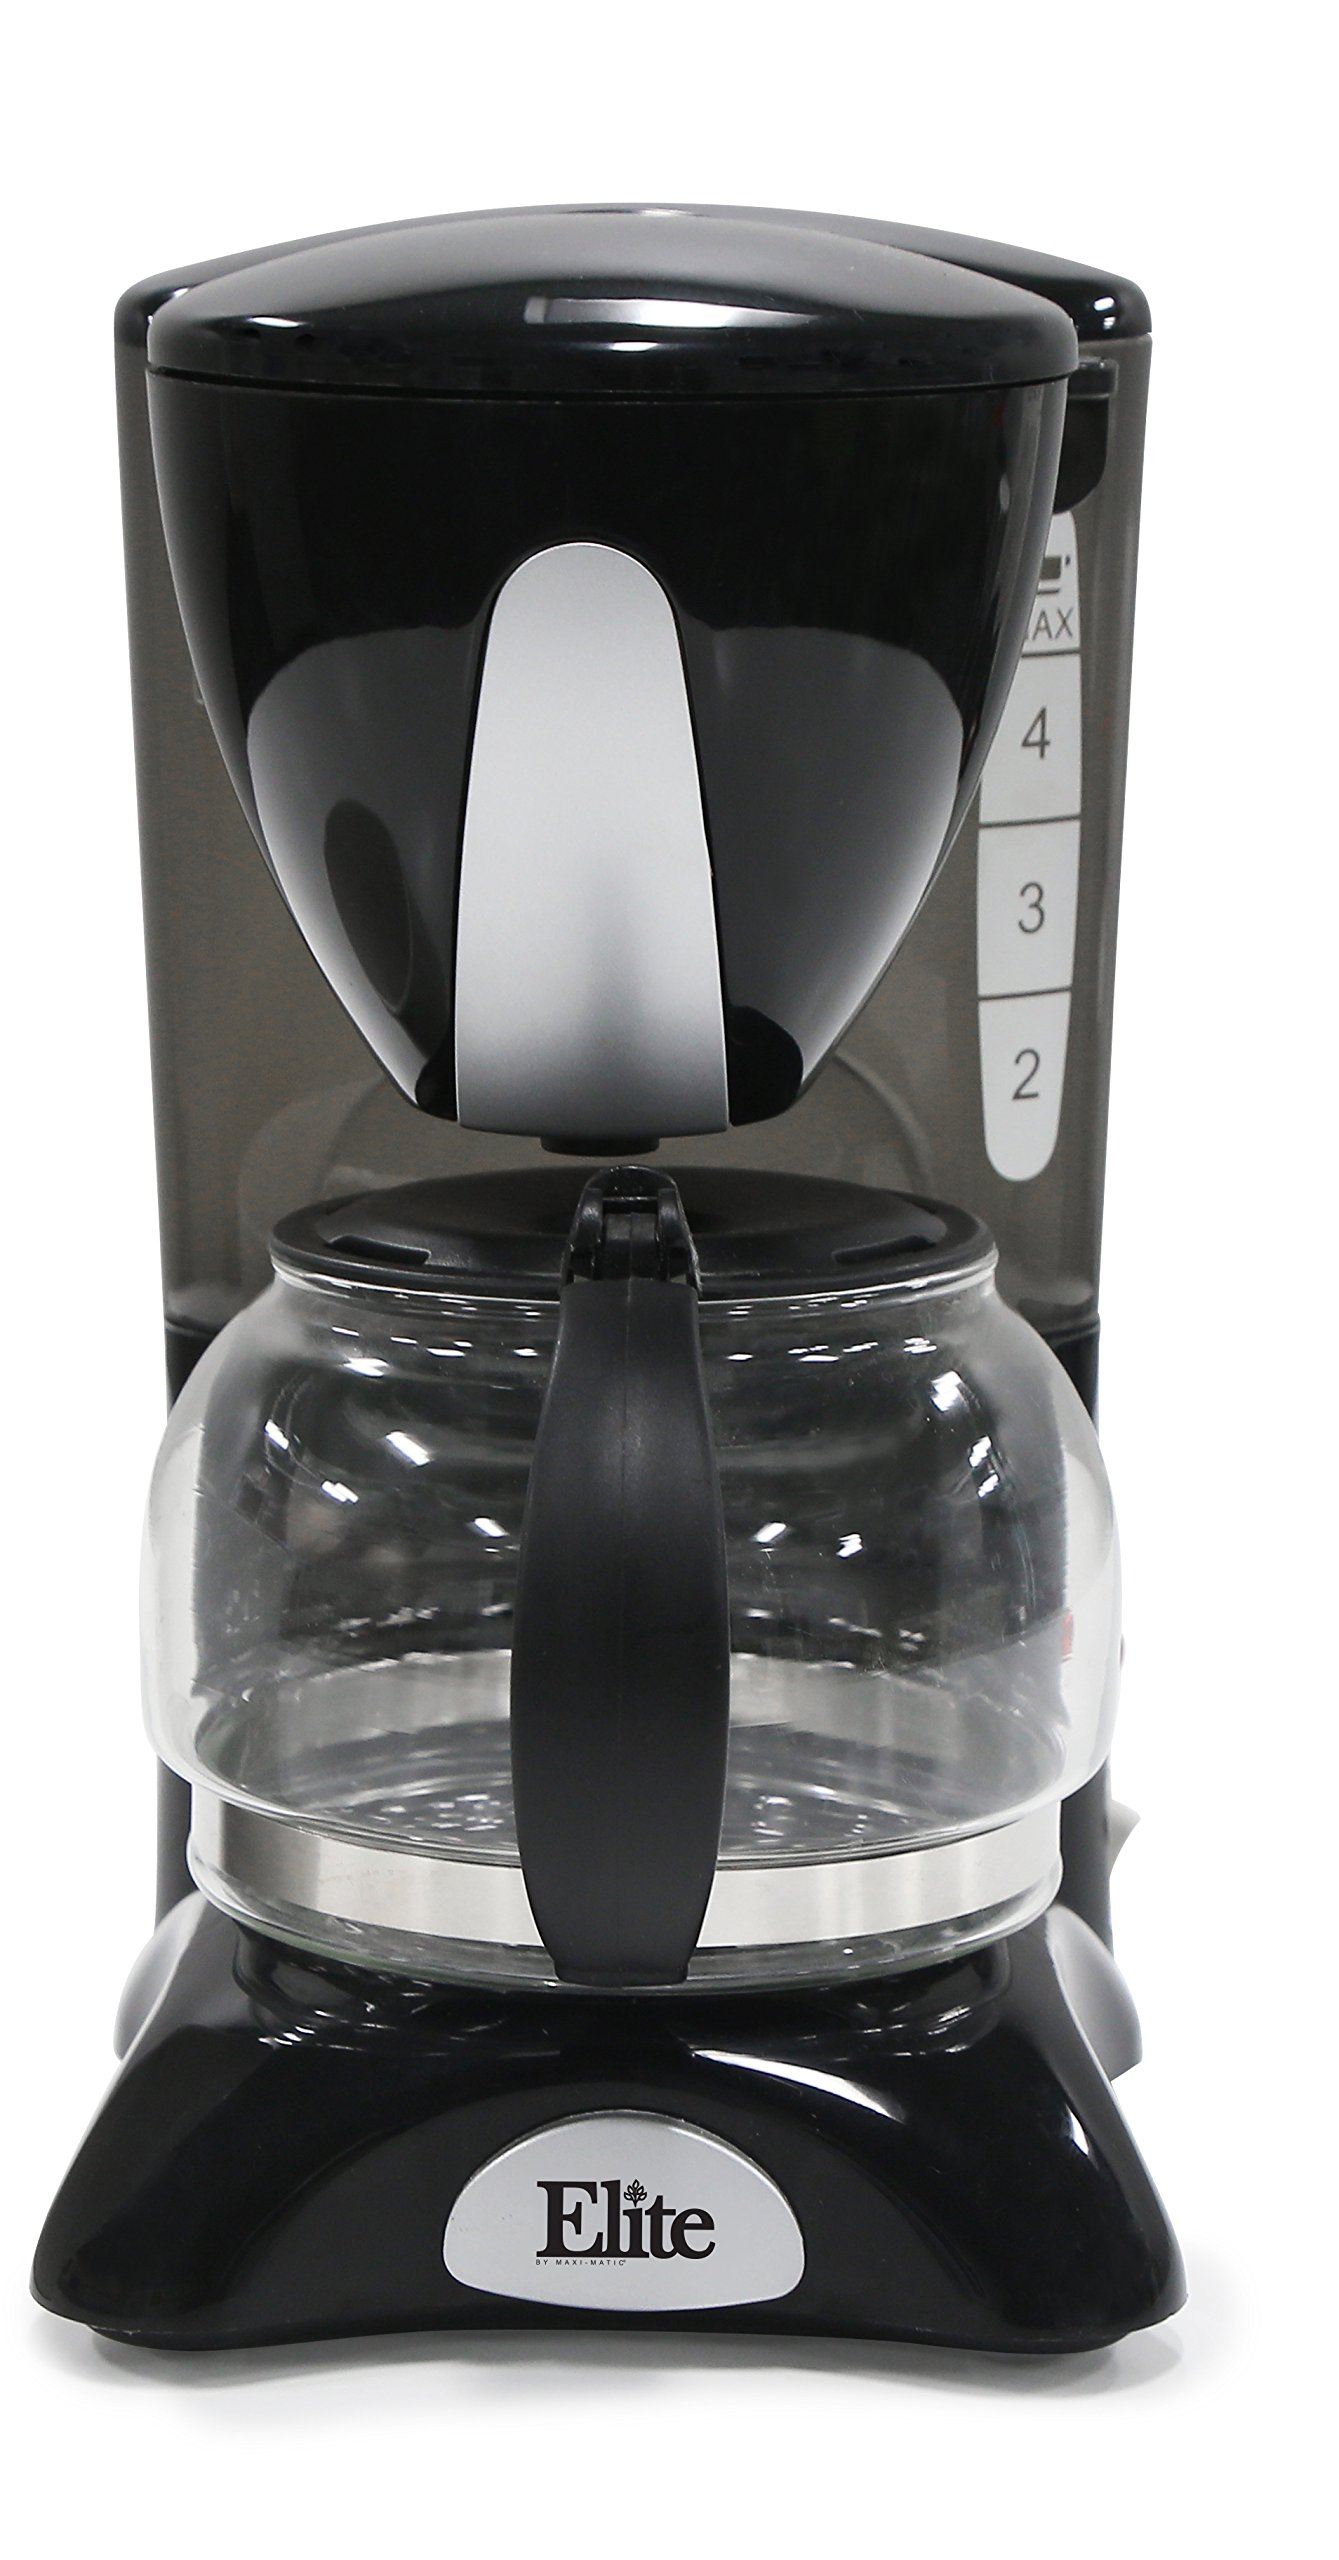 Elite Cuisine EHC-2022 Maxi-Matic 4 Cup Coffee Maker with Pause and Serve, Black